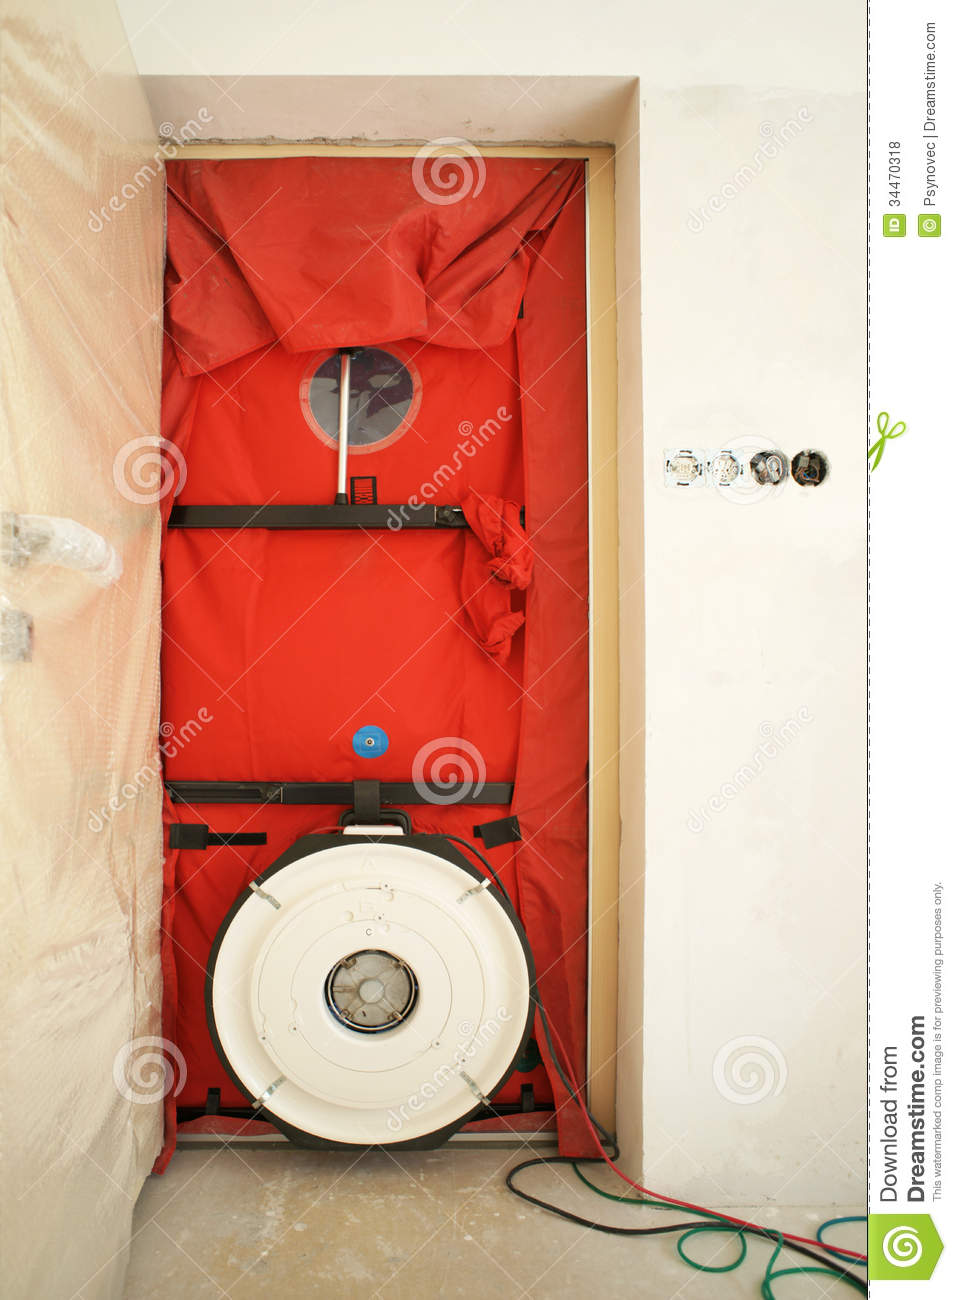 blower door testing royalty free stock photos image 34470318. Black Bedroom Furniture Sets. Home Design Ideas